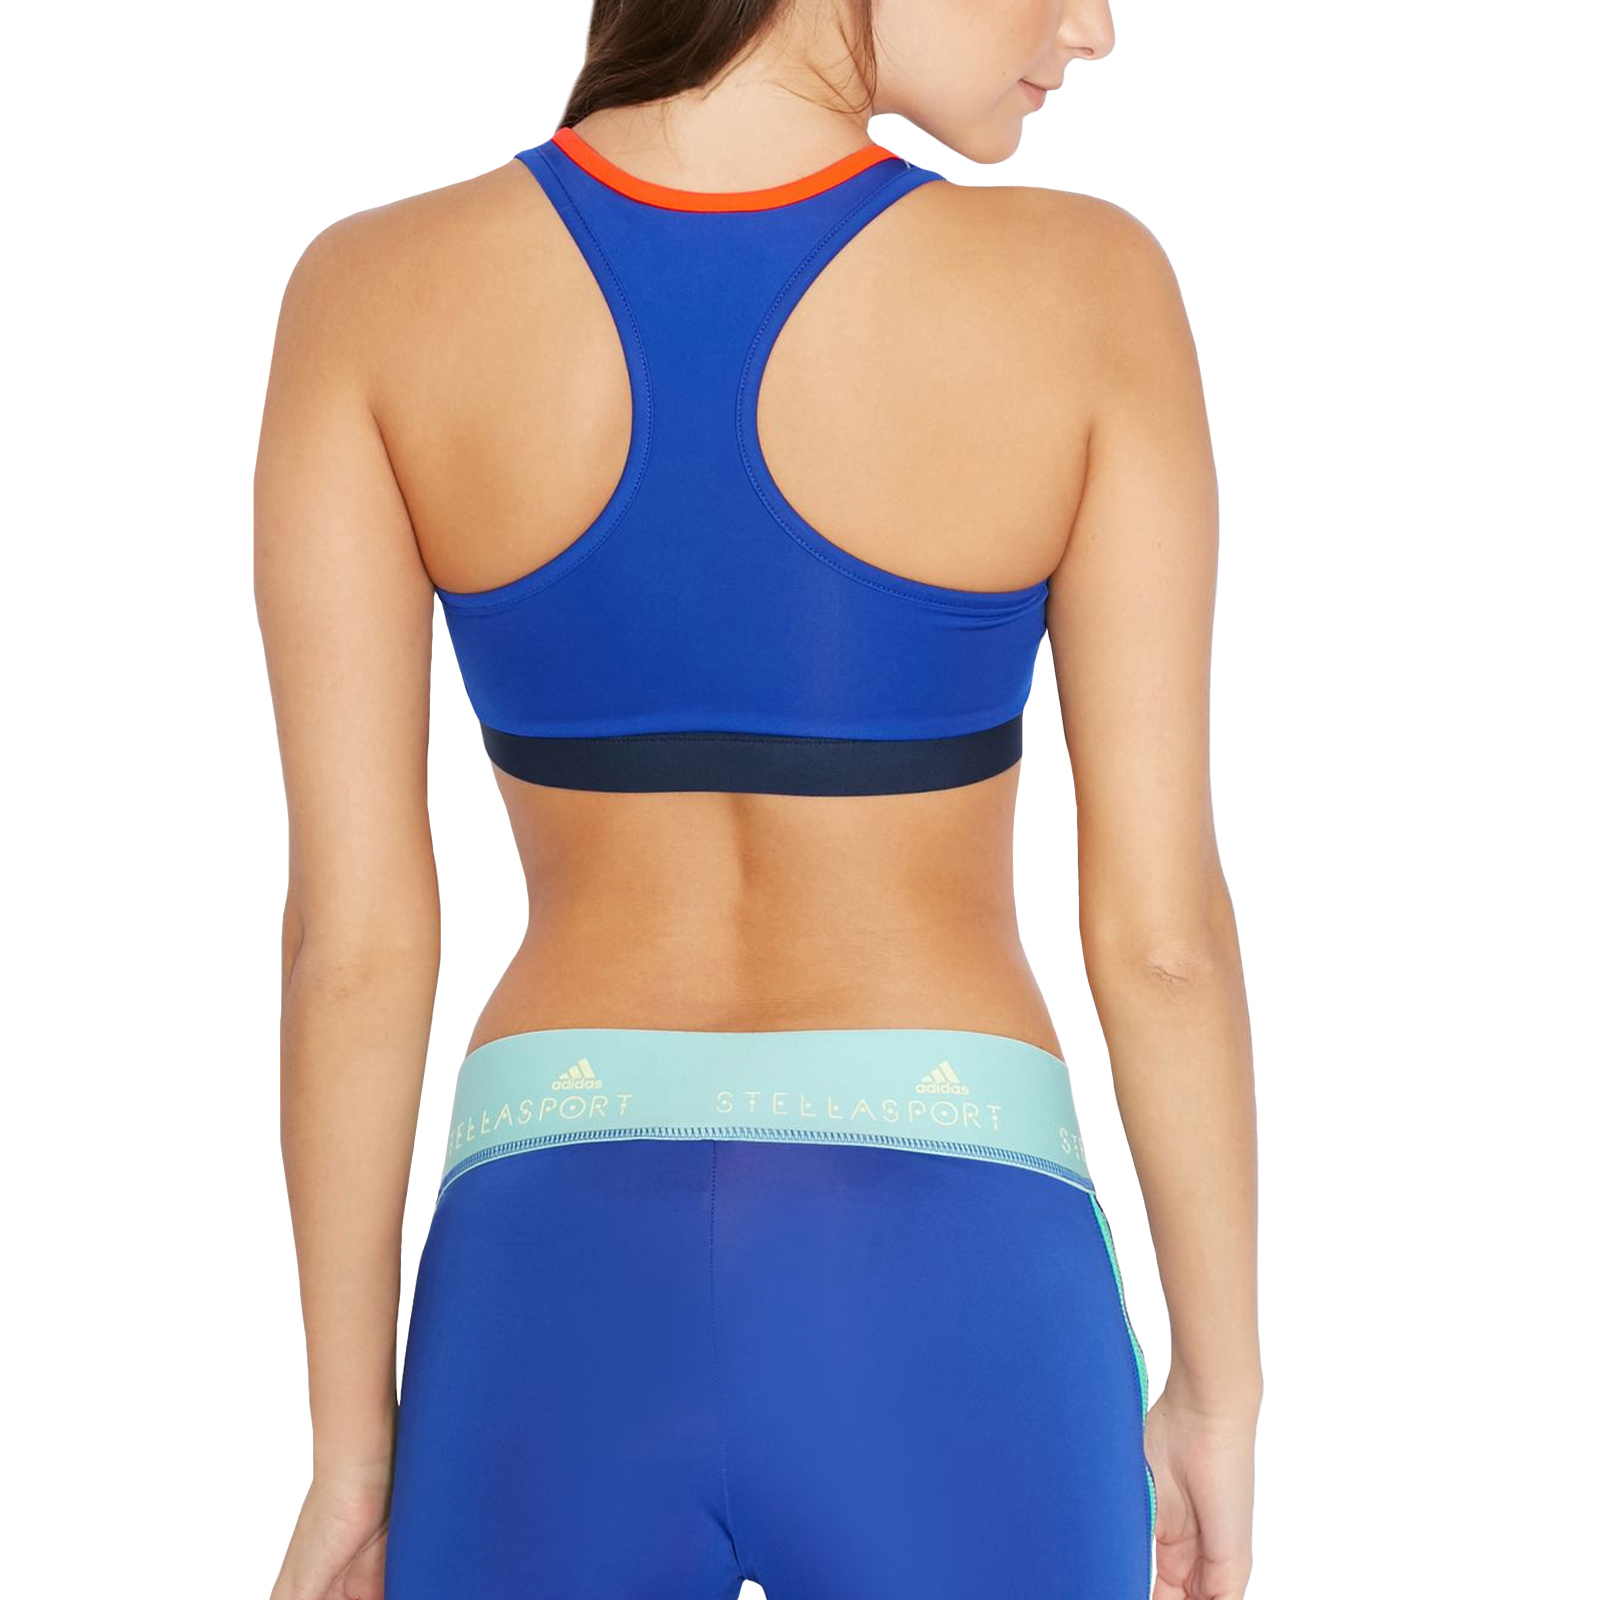 f559ad3cbbd89c Details about adidas Performance Womens STELLASPORT Climalite Gym Crop Top  Padded Sports Bra